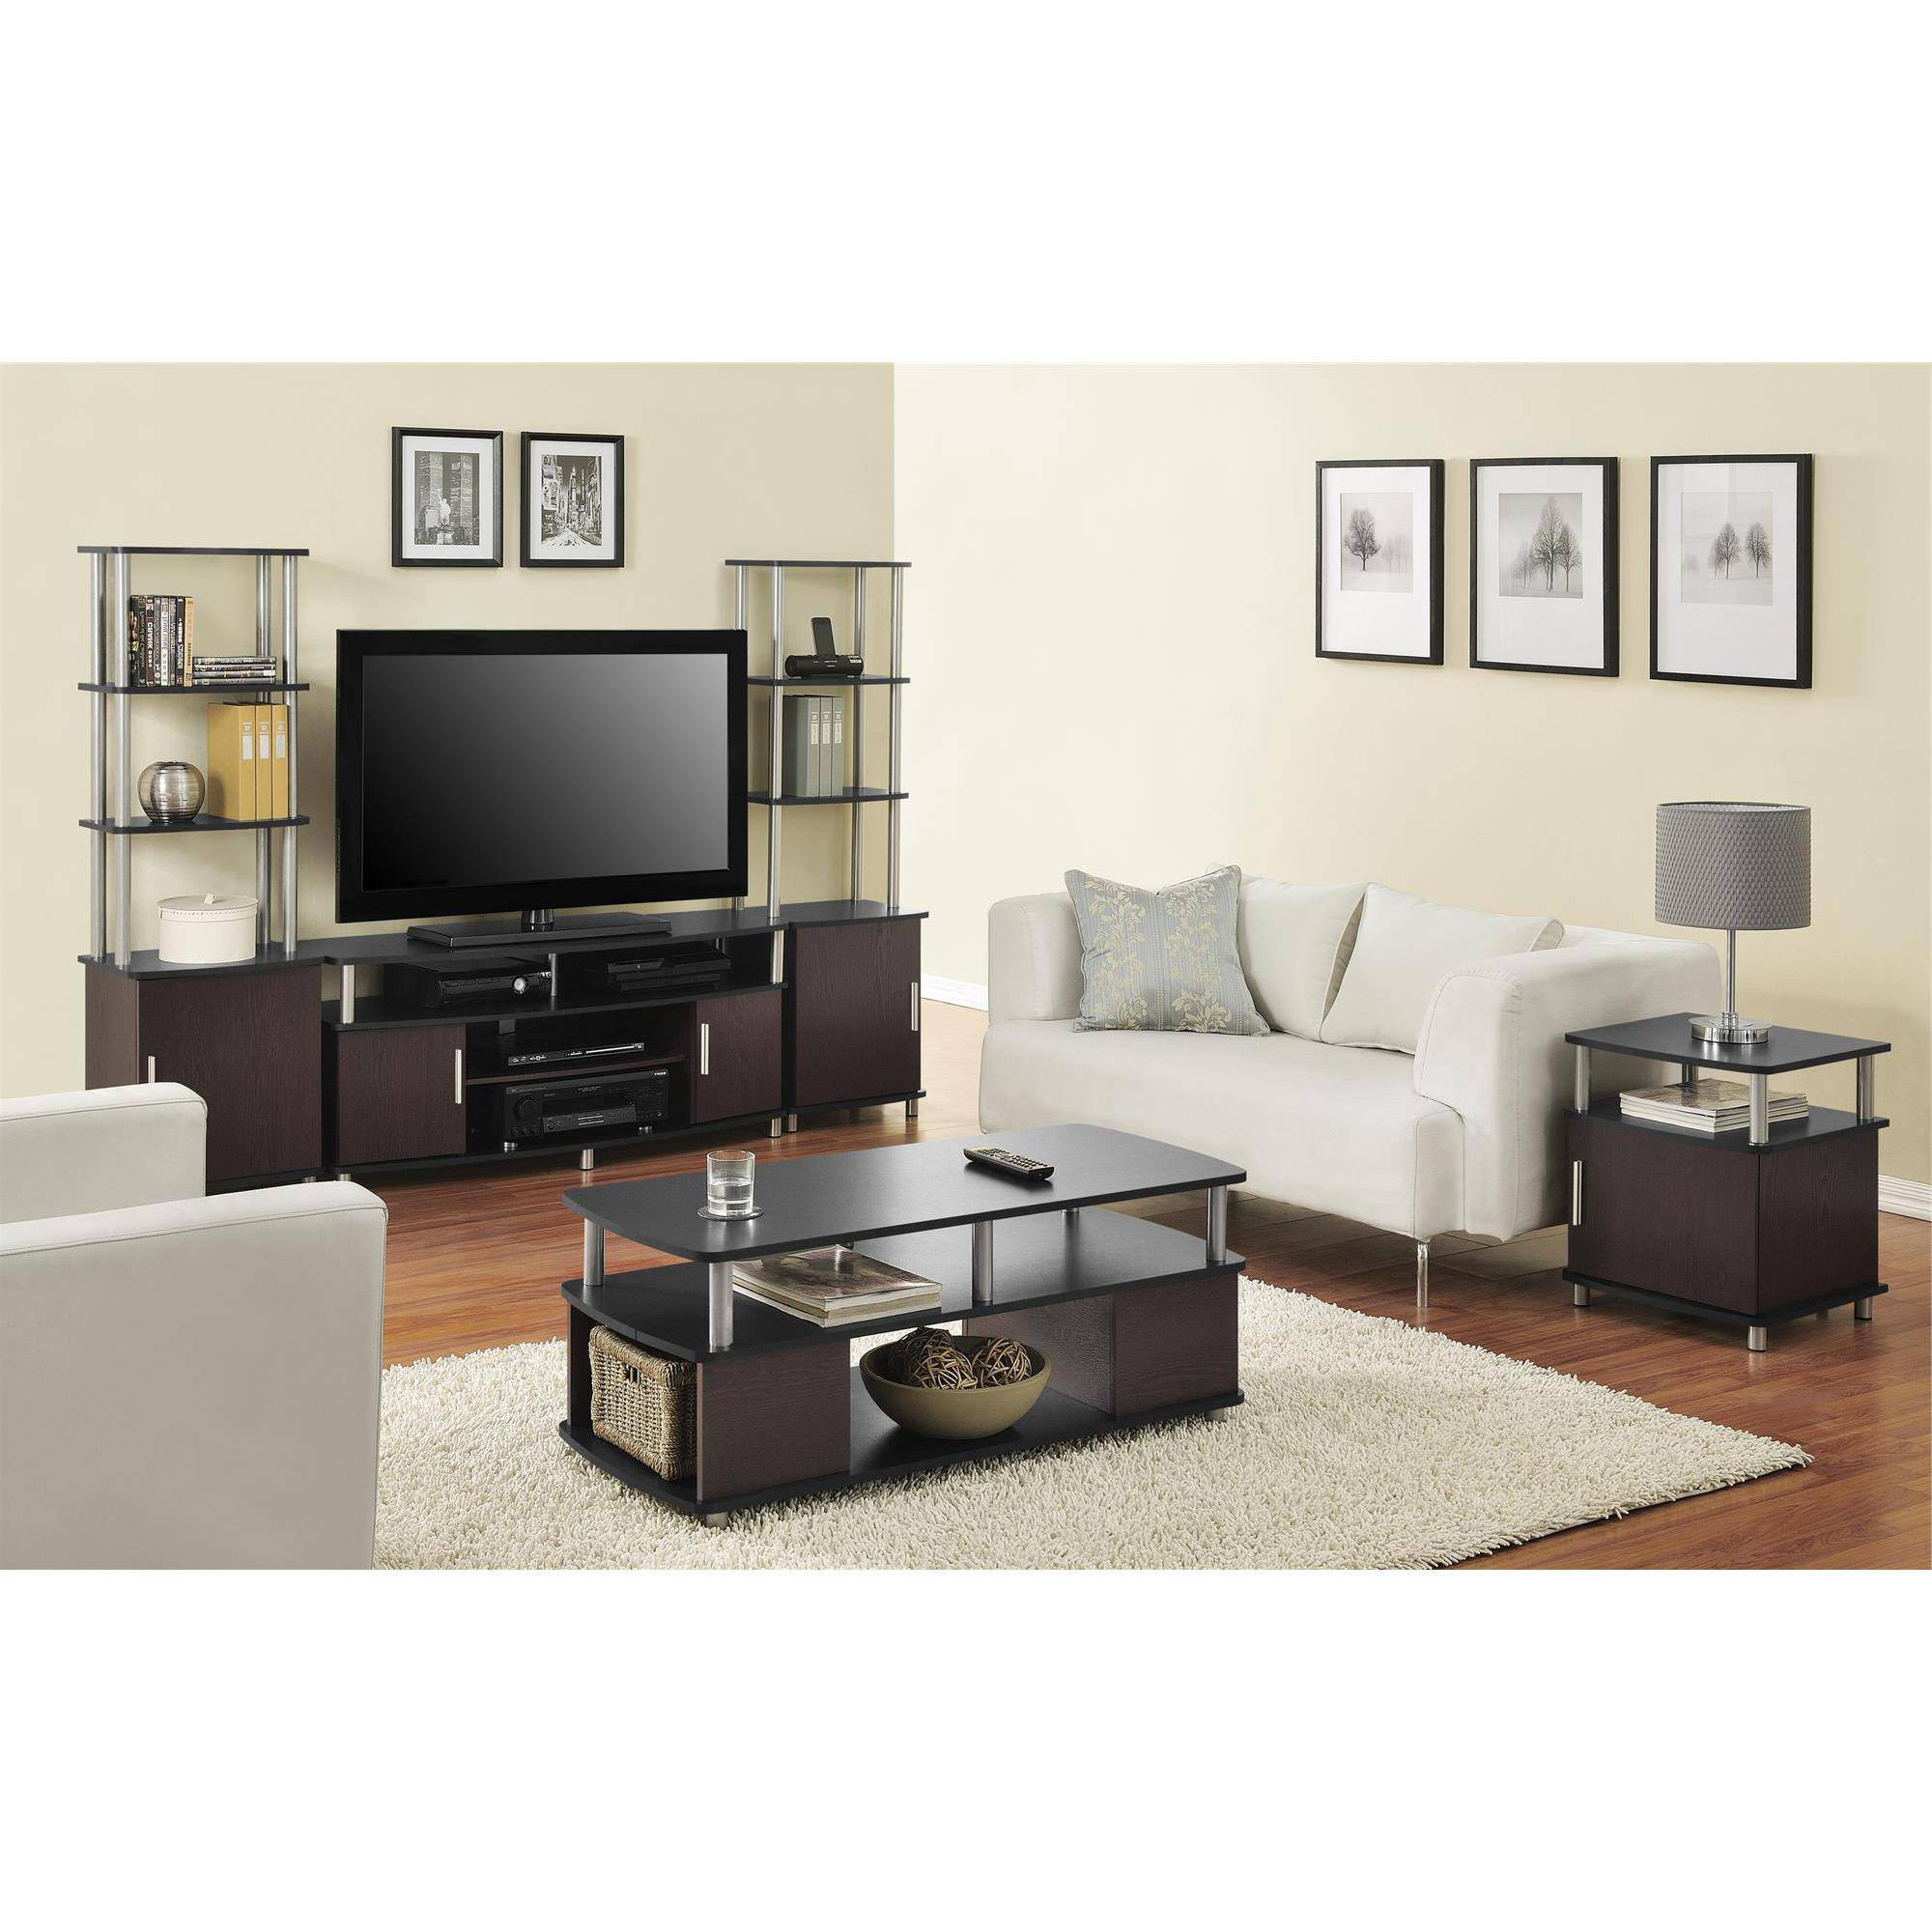 Preferred Matching Tv Stand And Computer Desk Can I Use A Coffee Table As For Matching Tv Unit And Coffee Tables (Gallery 4 of 20)